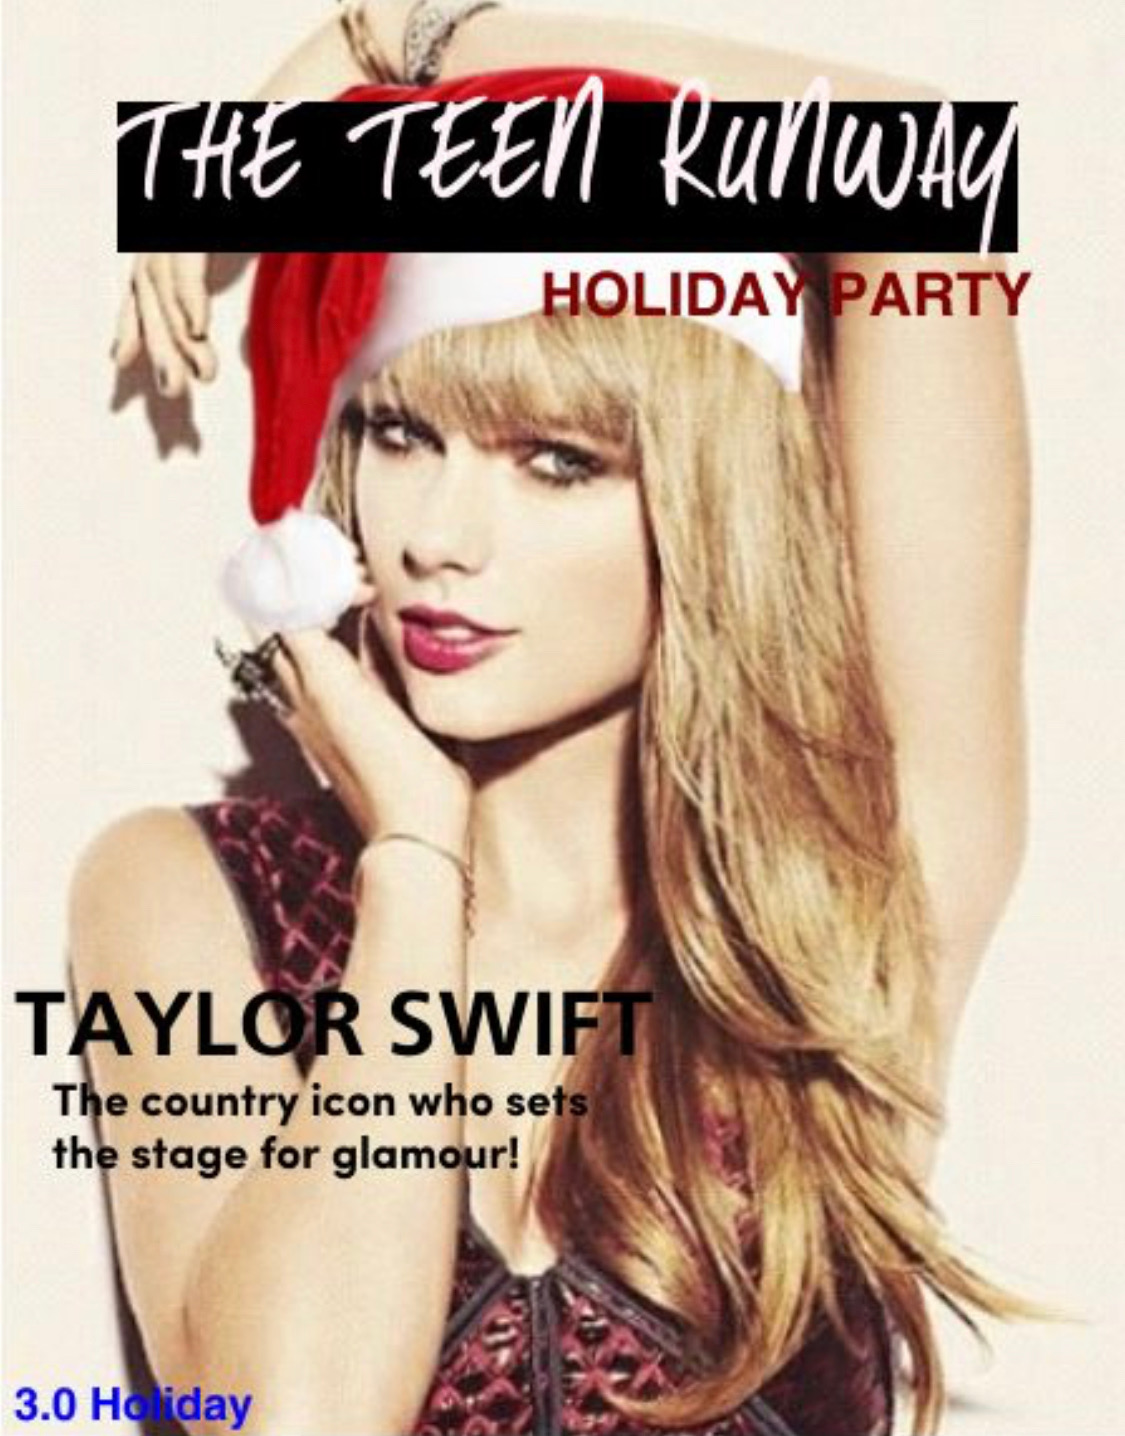 THE TEEN RUNWAY Magazine – Holiday Party 2013!